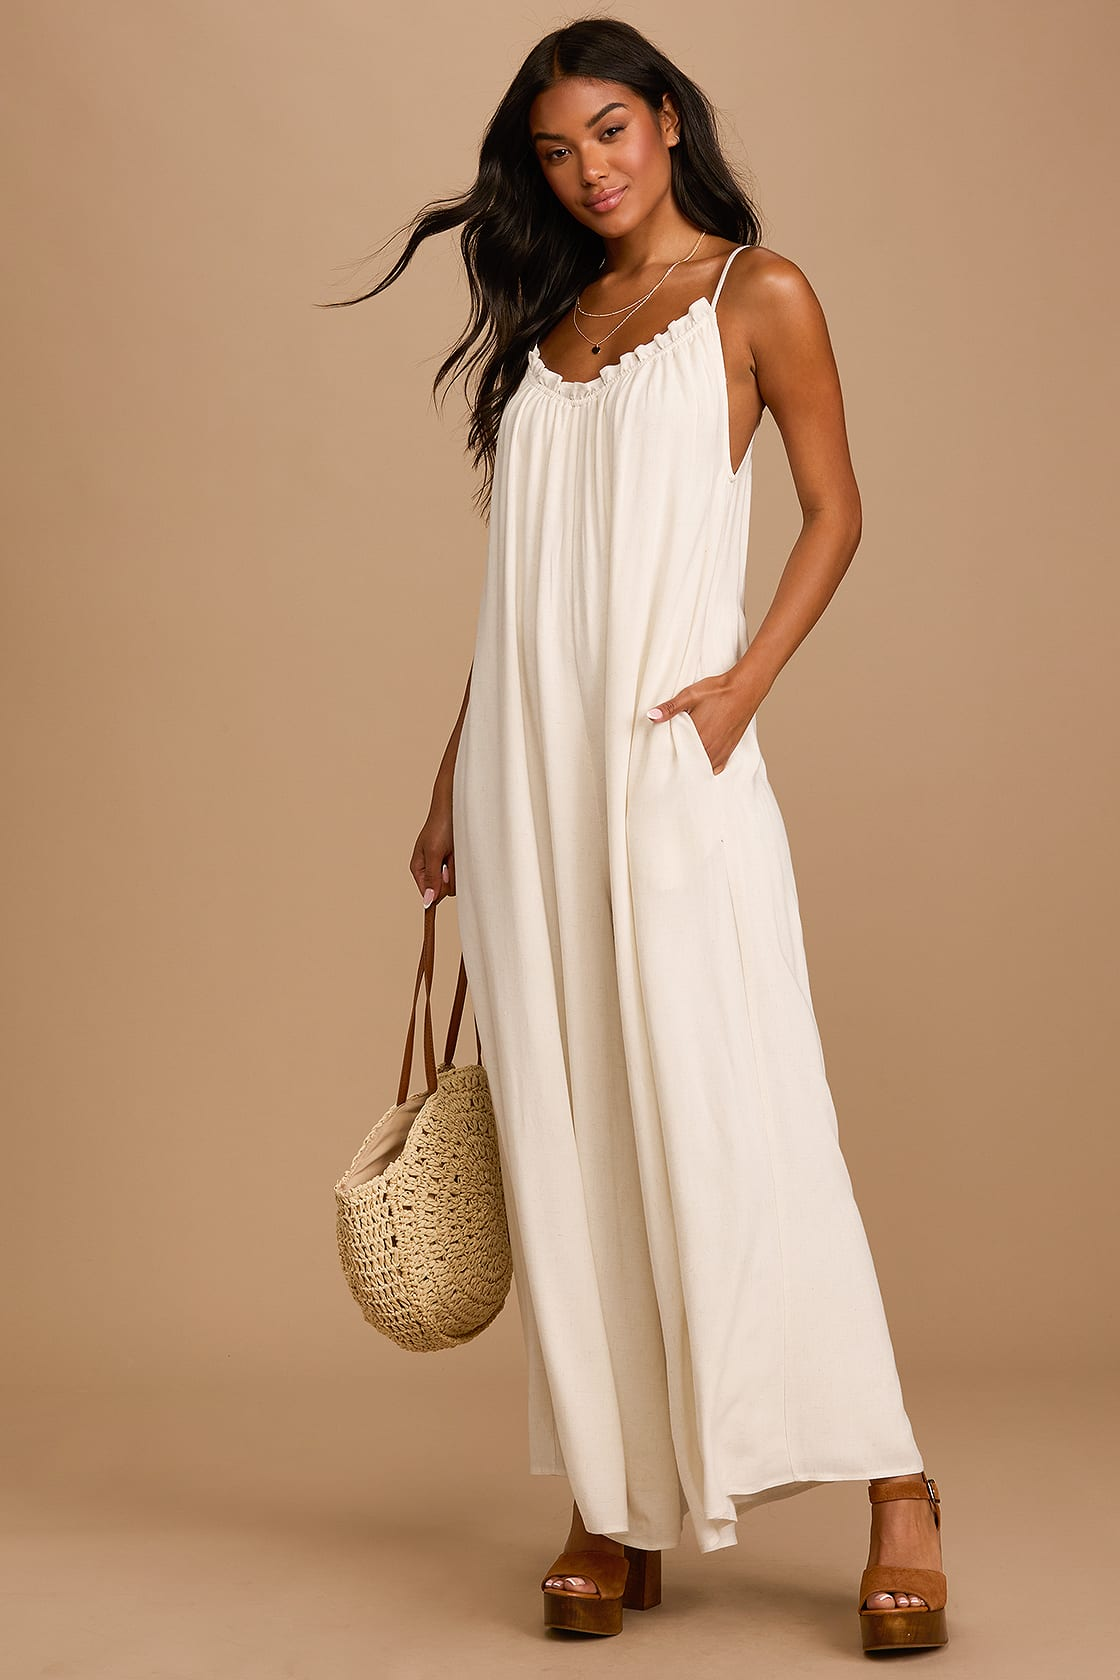 What To Wear To A Boat Party: White jumpsuit